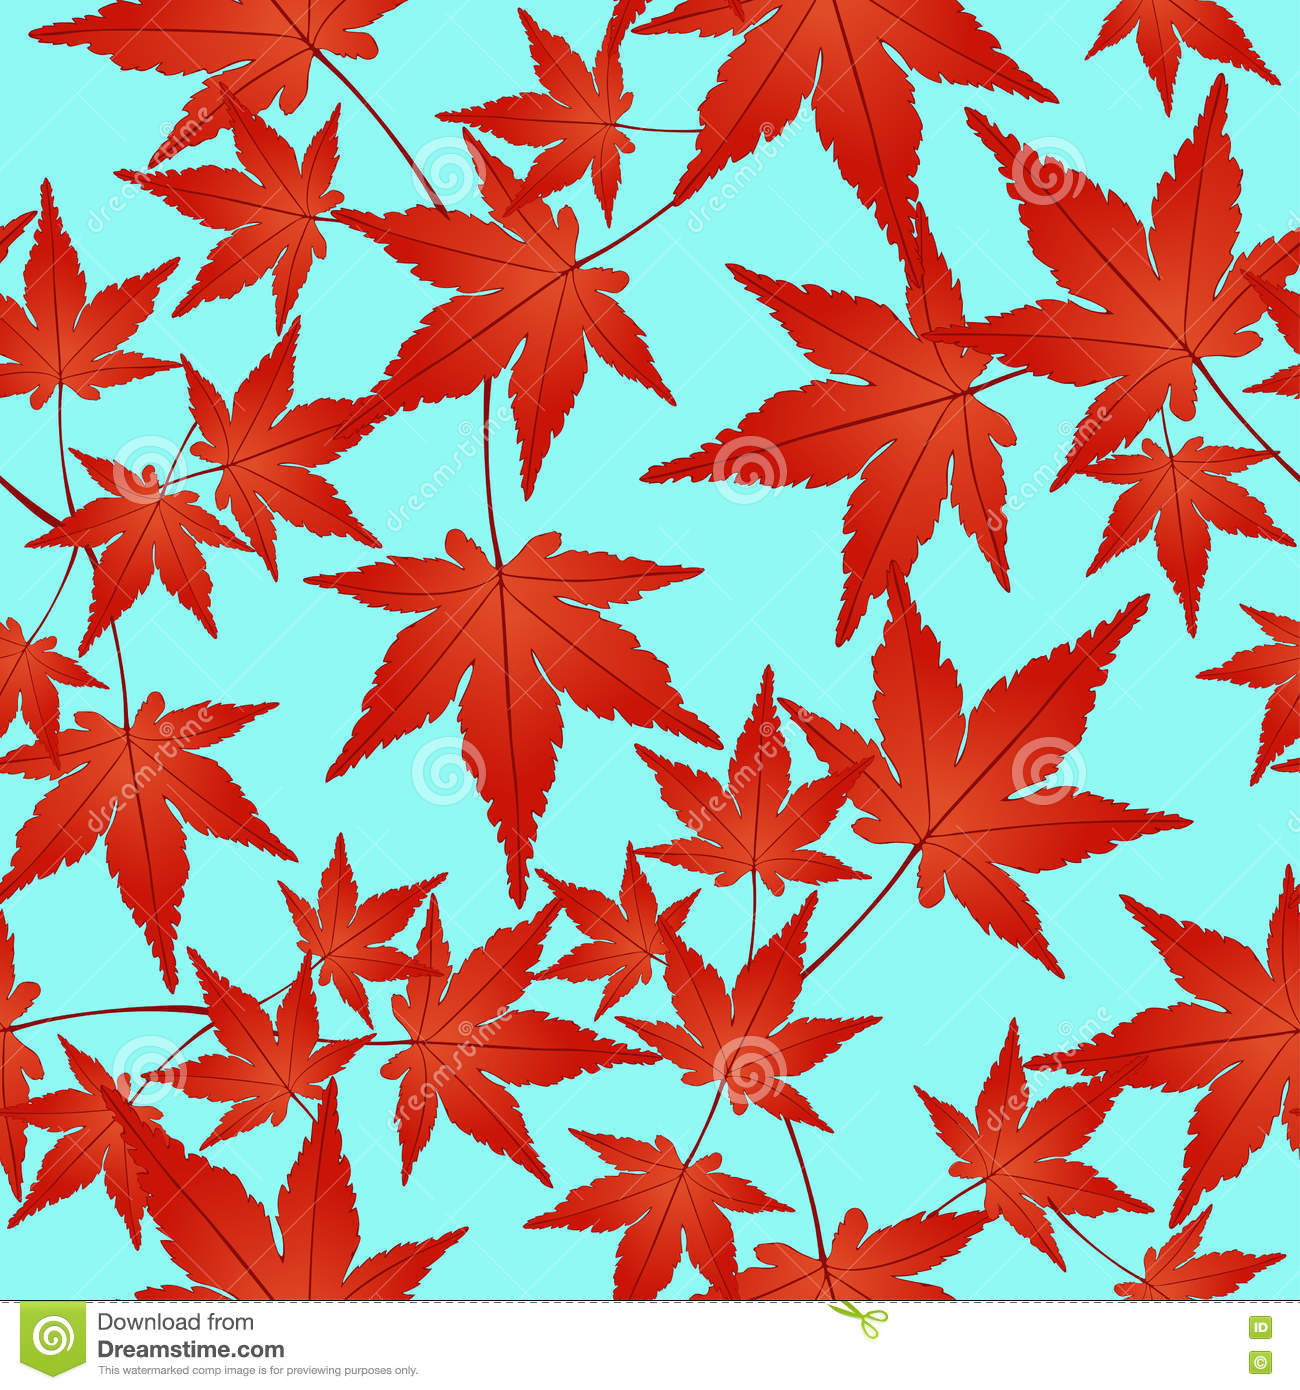 red leaves seamless pattern, vector background. autumn on a blue